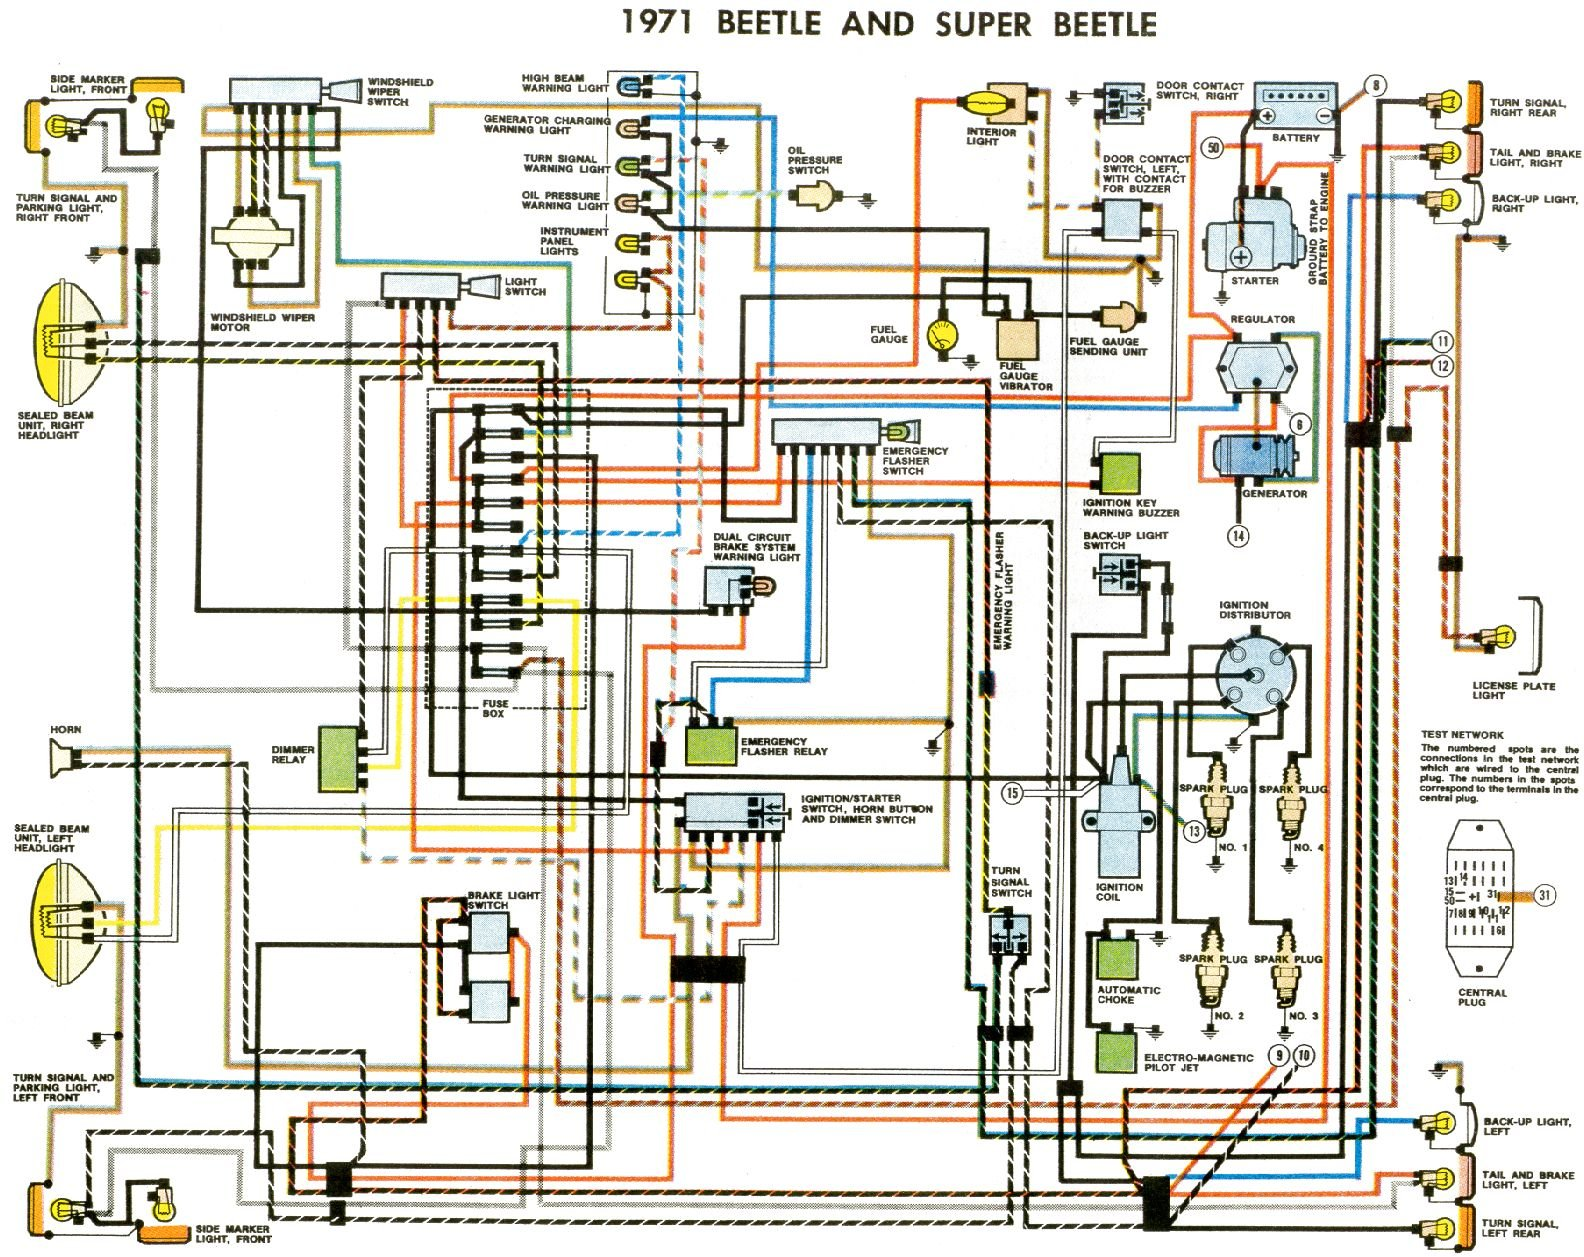 1971 beetle wiring diagram (usa) | thegoldenbug.com 2006 vw pat starter wiring diagram 2006 vw gti ignition wiring diagram